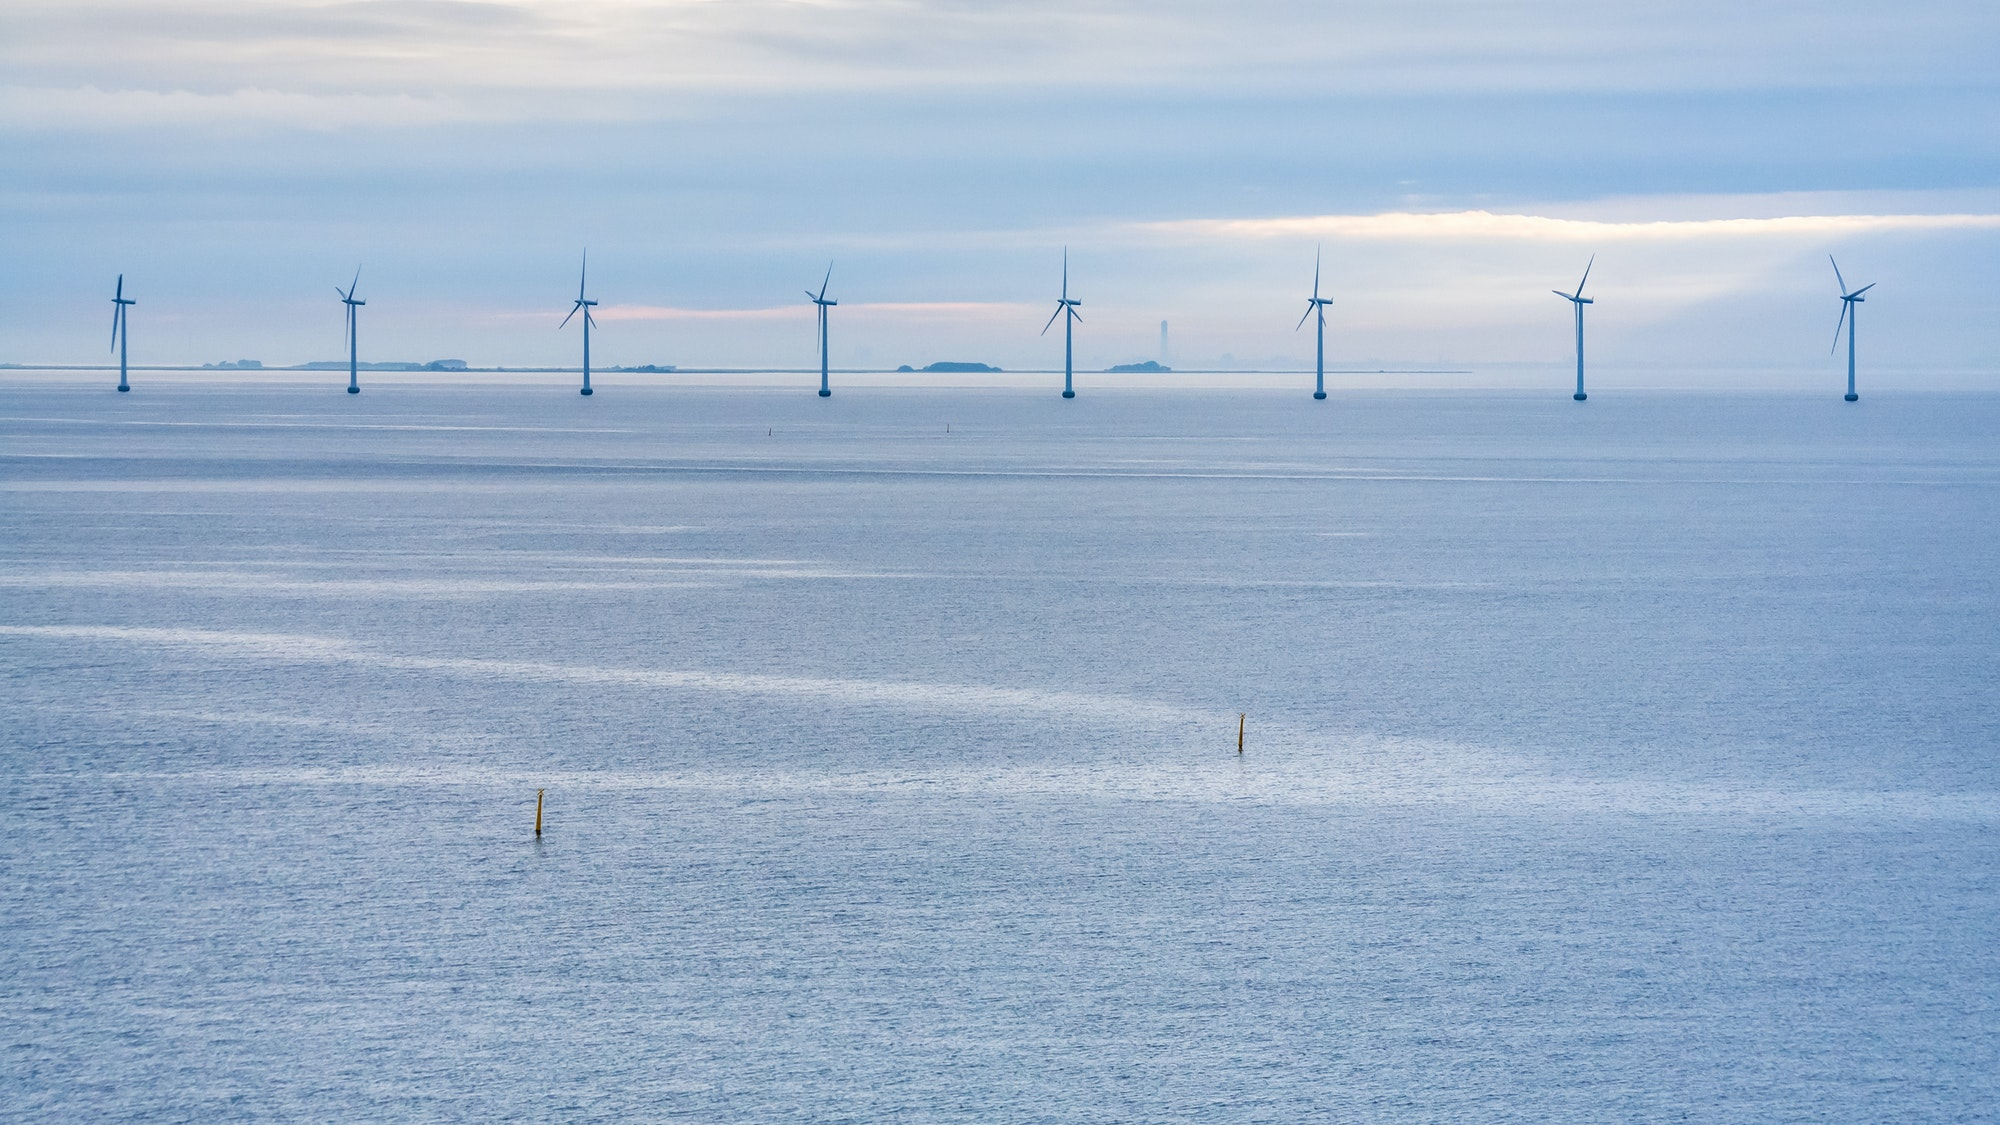 panorama of Baltic Sea with offshore wind farm